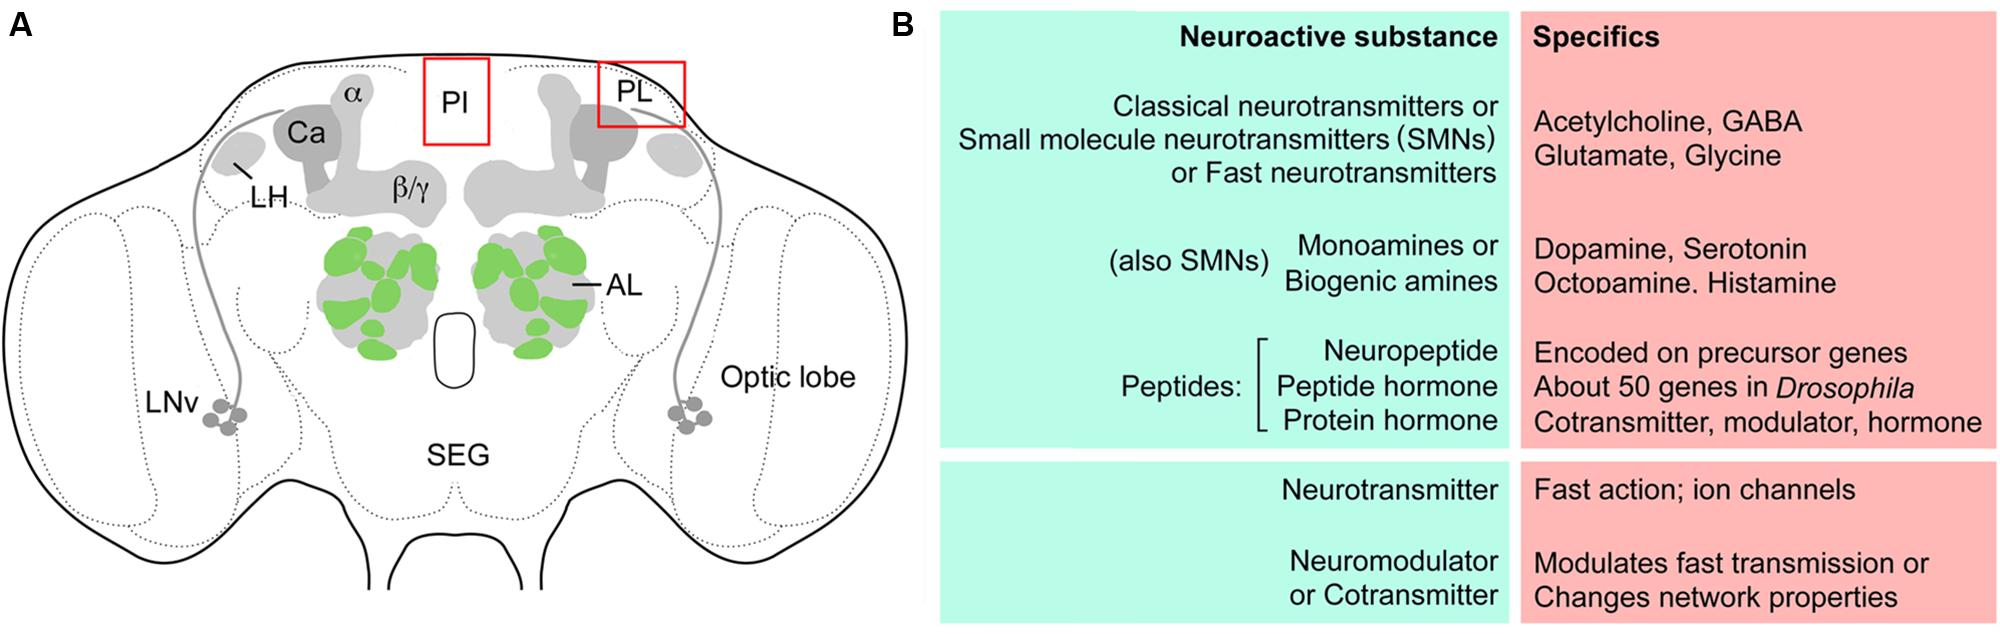 Frontiers Substrates For Neuronal Cotransmission With Cool Circuits Puts Your Brain Muscle To The Test